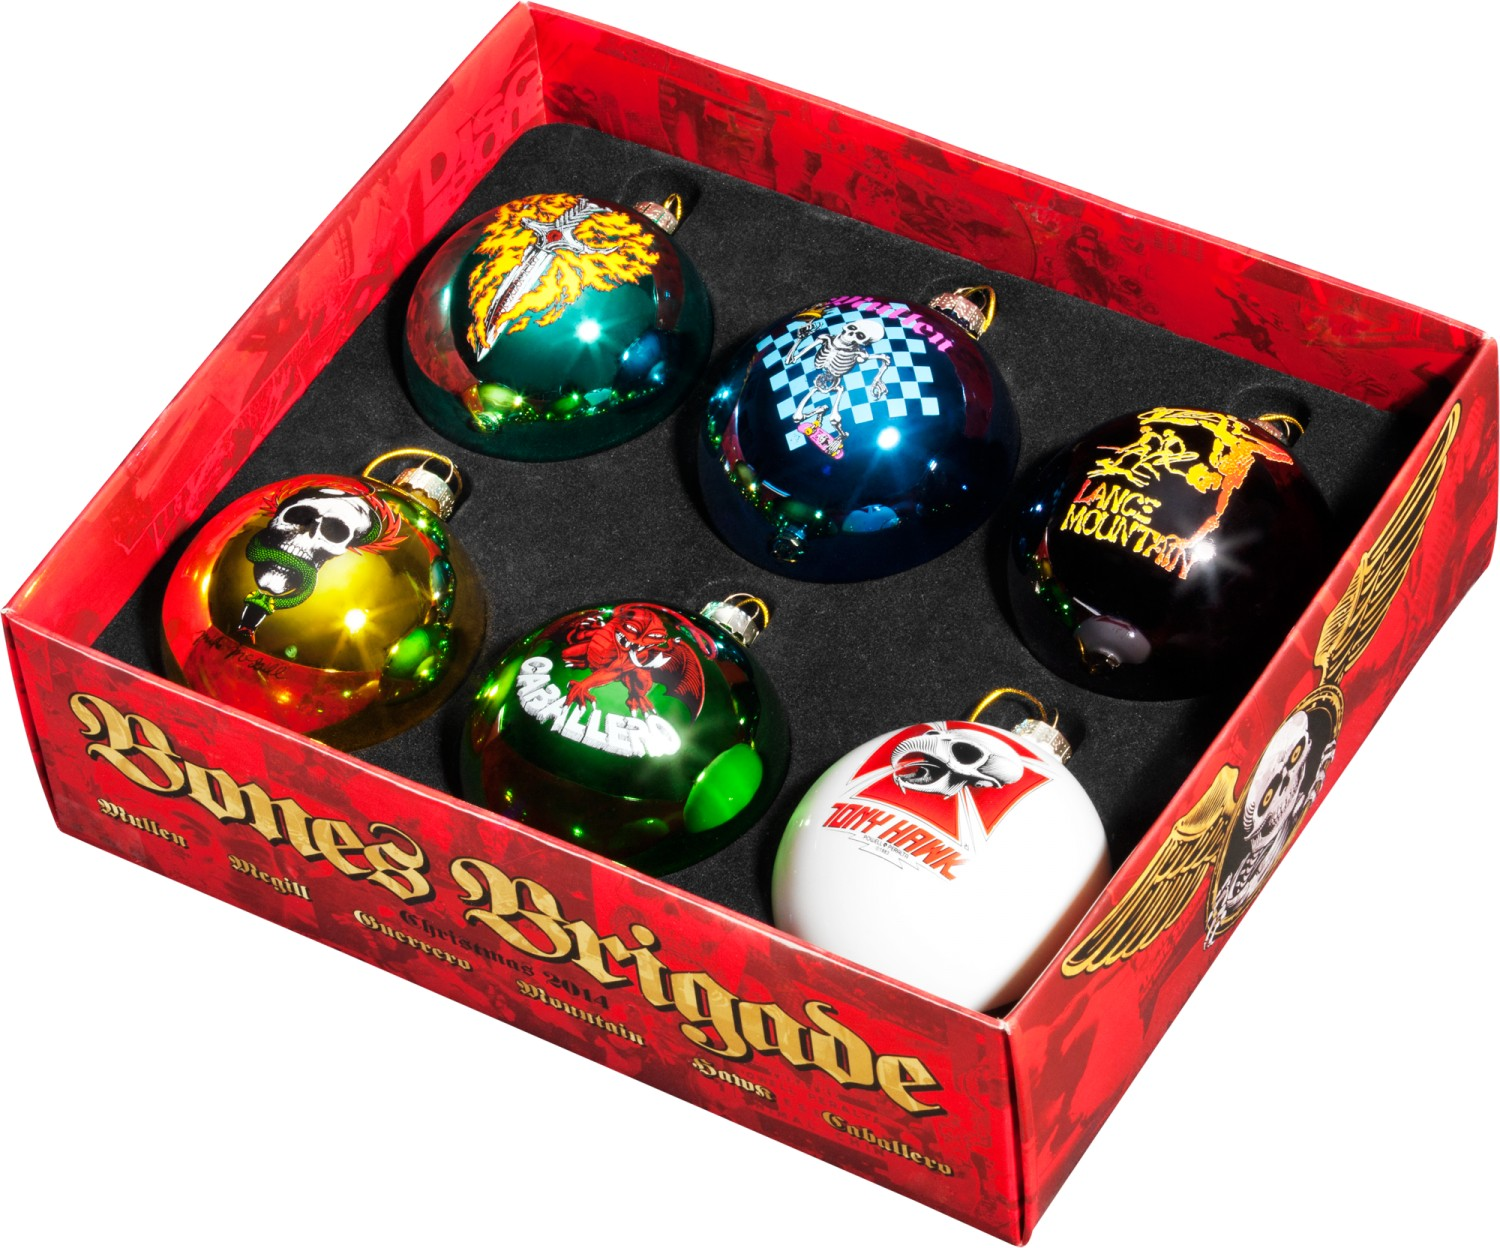 The Perfect Gift For That Old Skateboarder! The Bones Brigade Christmas  Ornaments (6 Pack